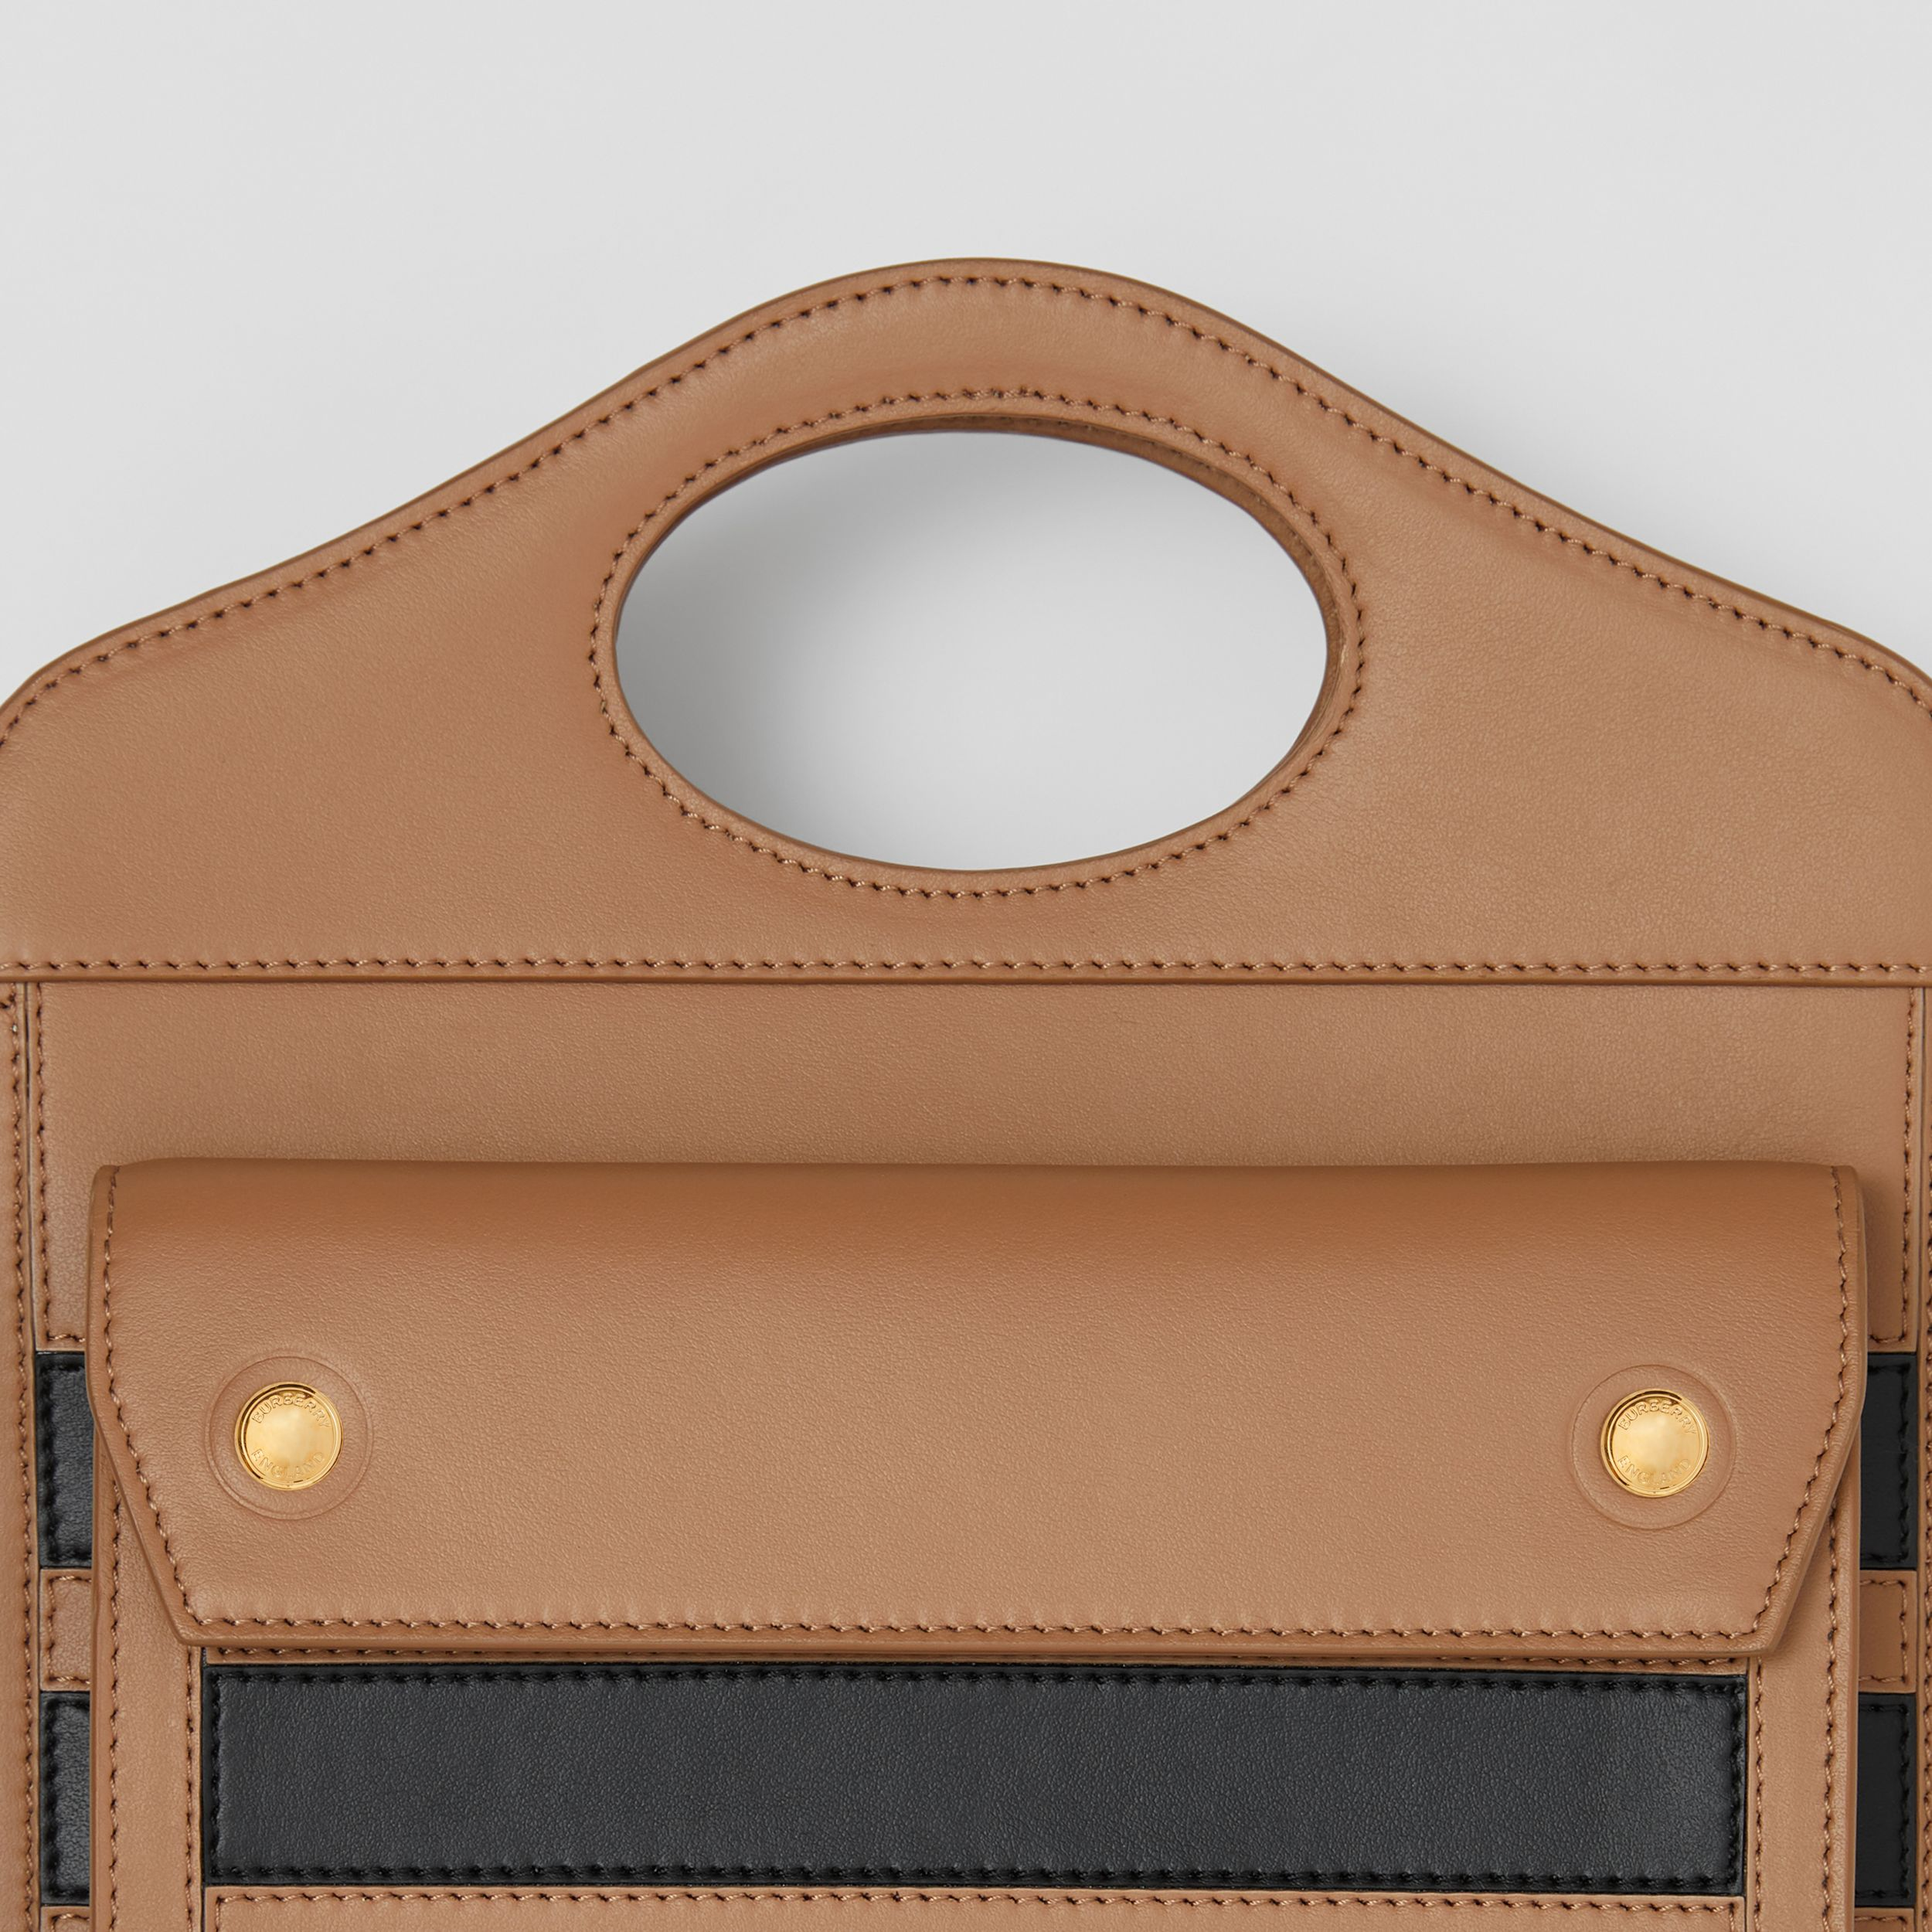 Mini Striped Intarsia Leather Pocket Bag in Camel - Women | Burberry Canada - 2